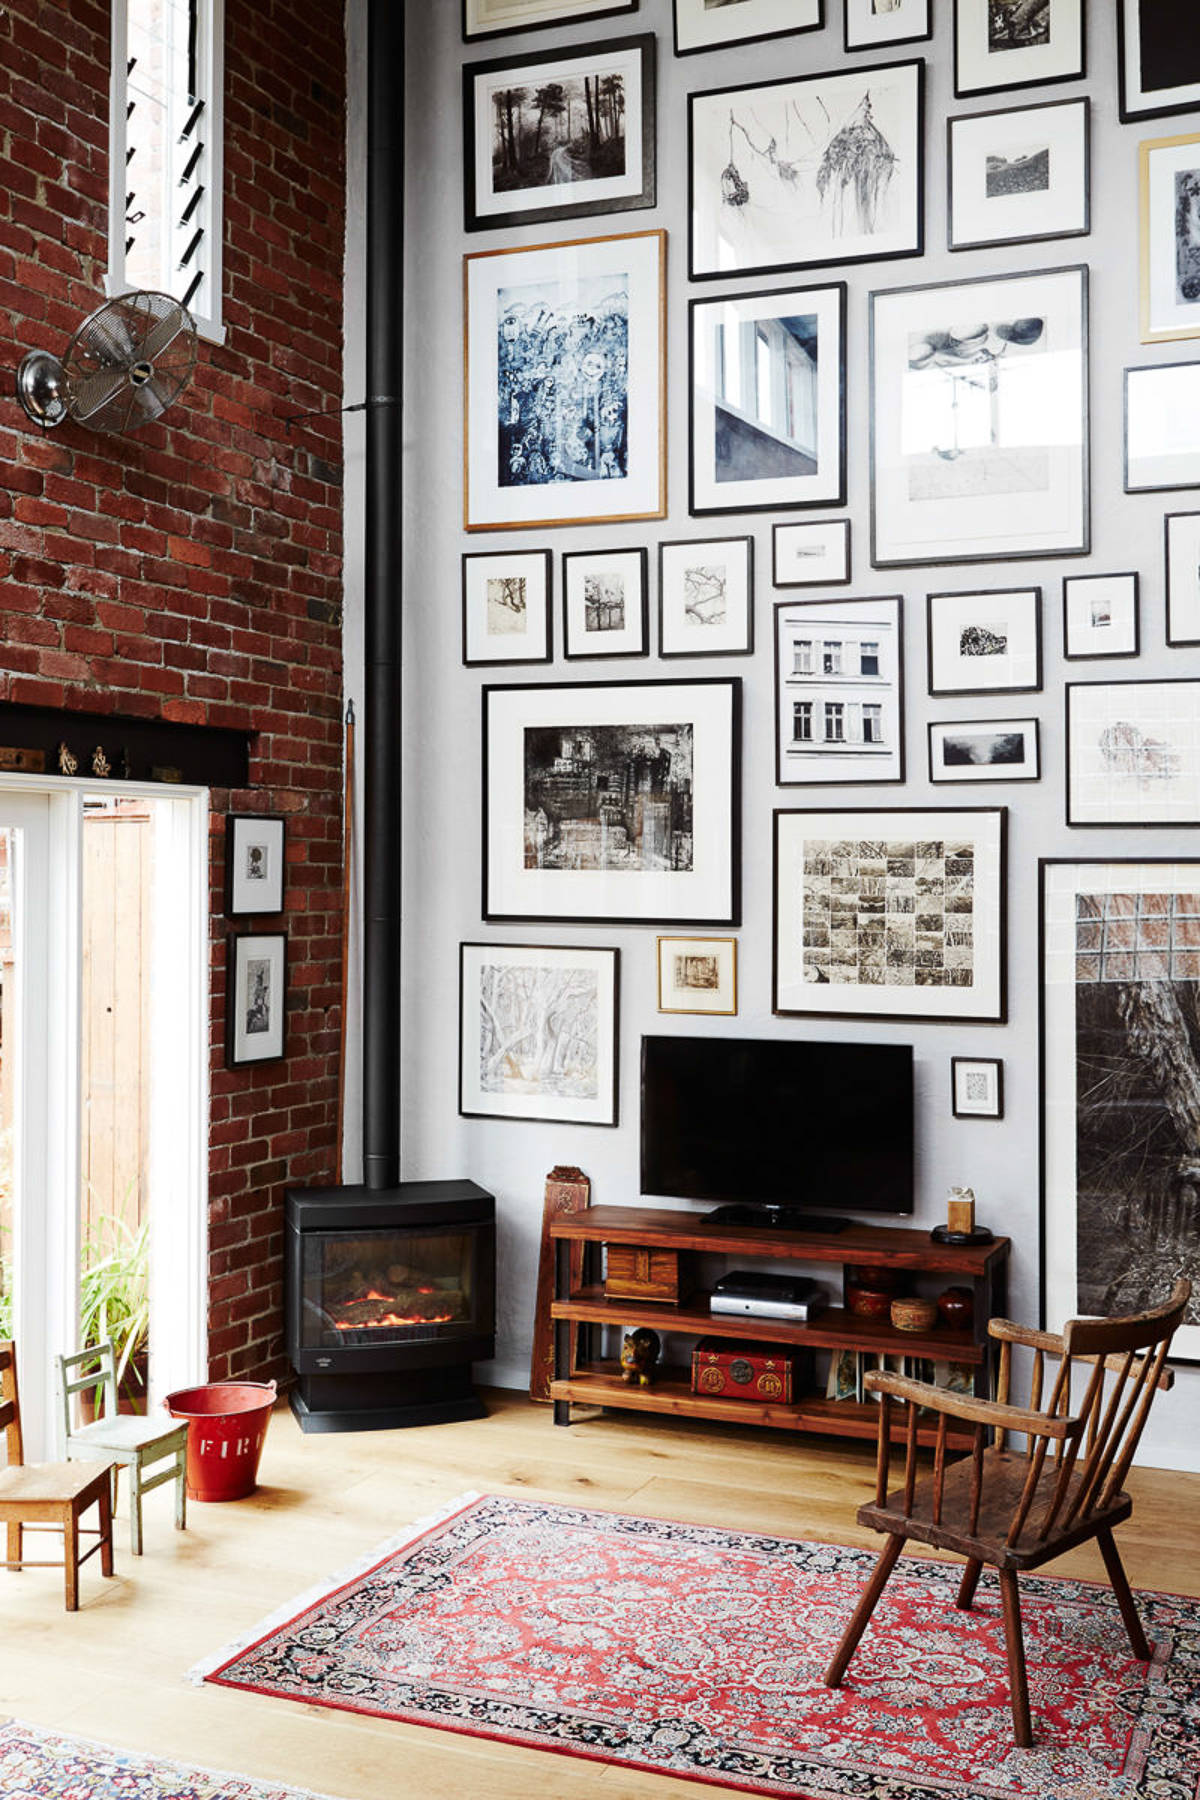 Home Inspiration: Home Inspiration: Gallery Walls